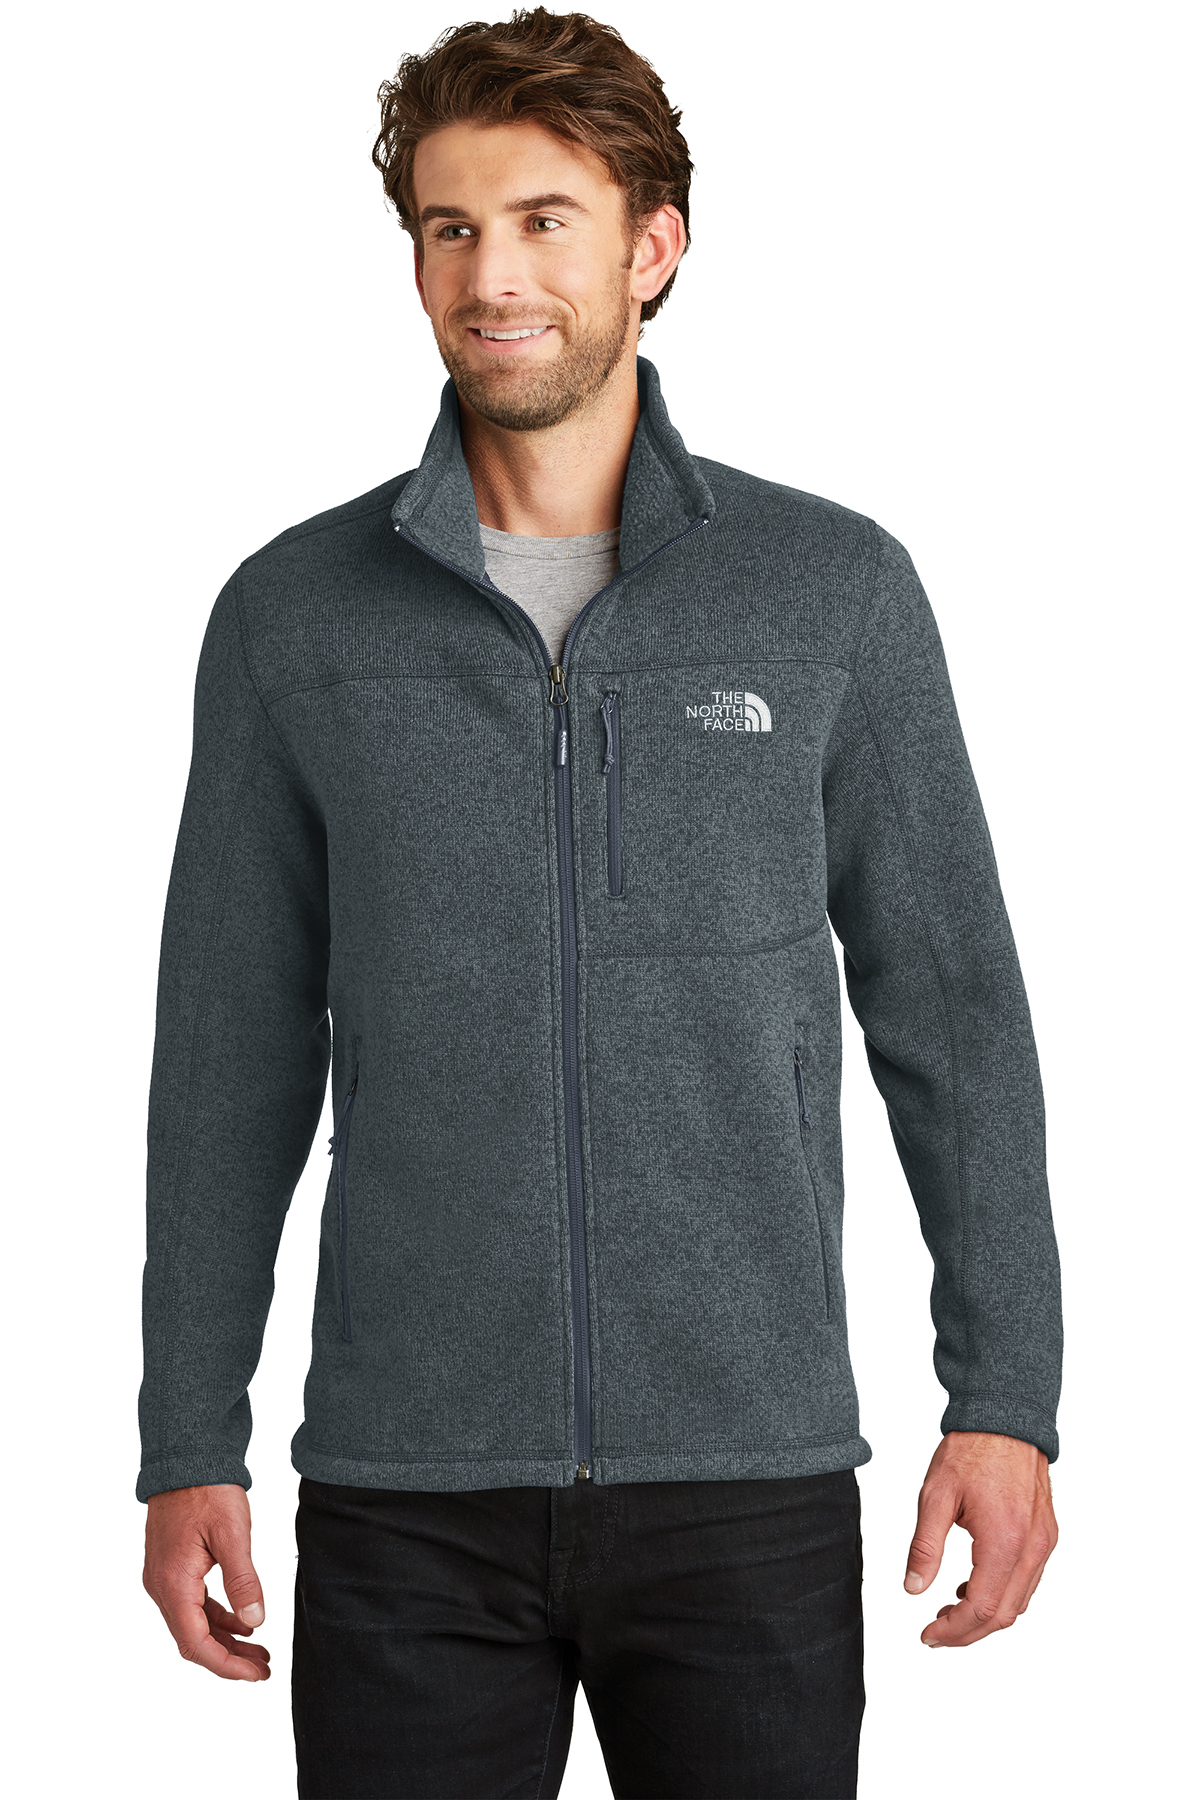 The North Face® NF0A3LH7 - Men's Sweater Fleece ...